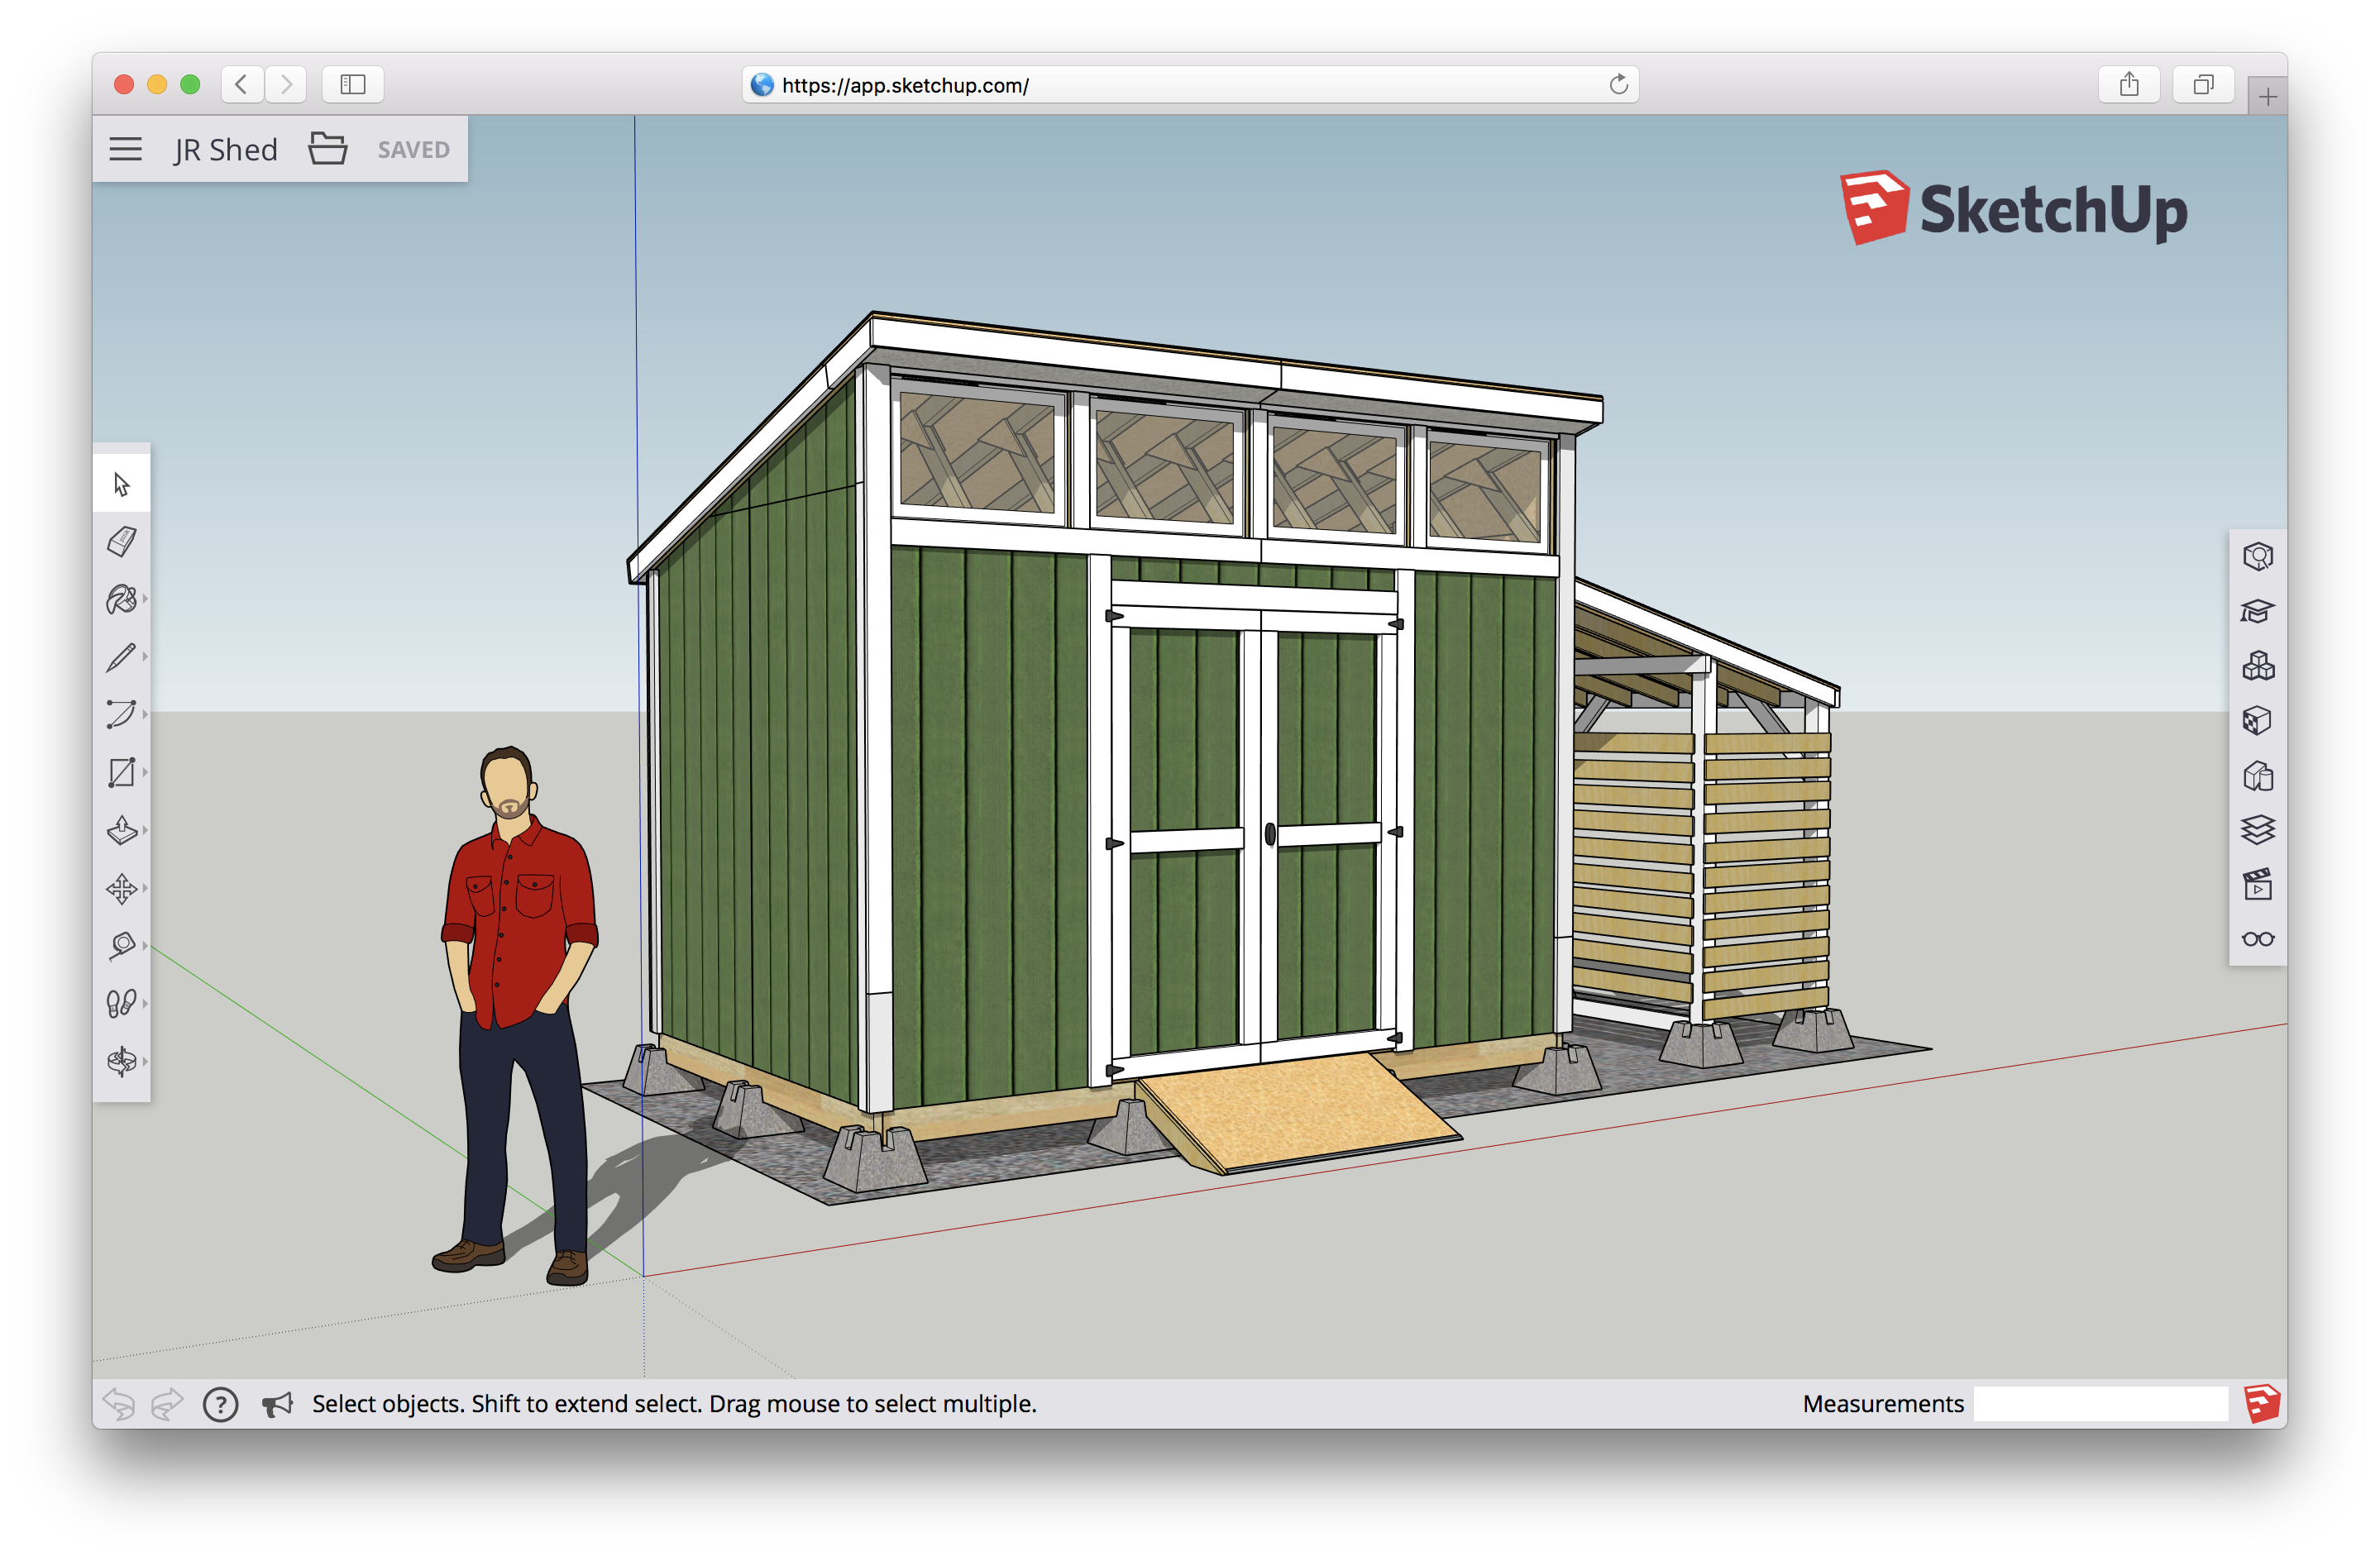 Gazebo drawing sketchup. Baltic free is the